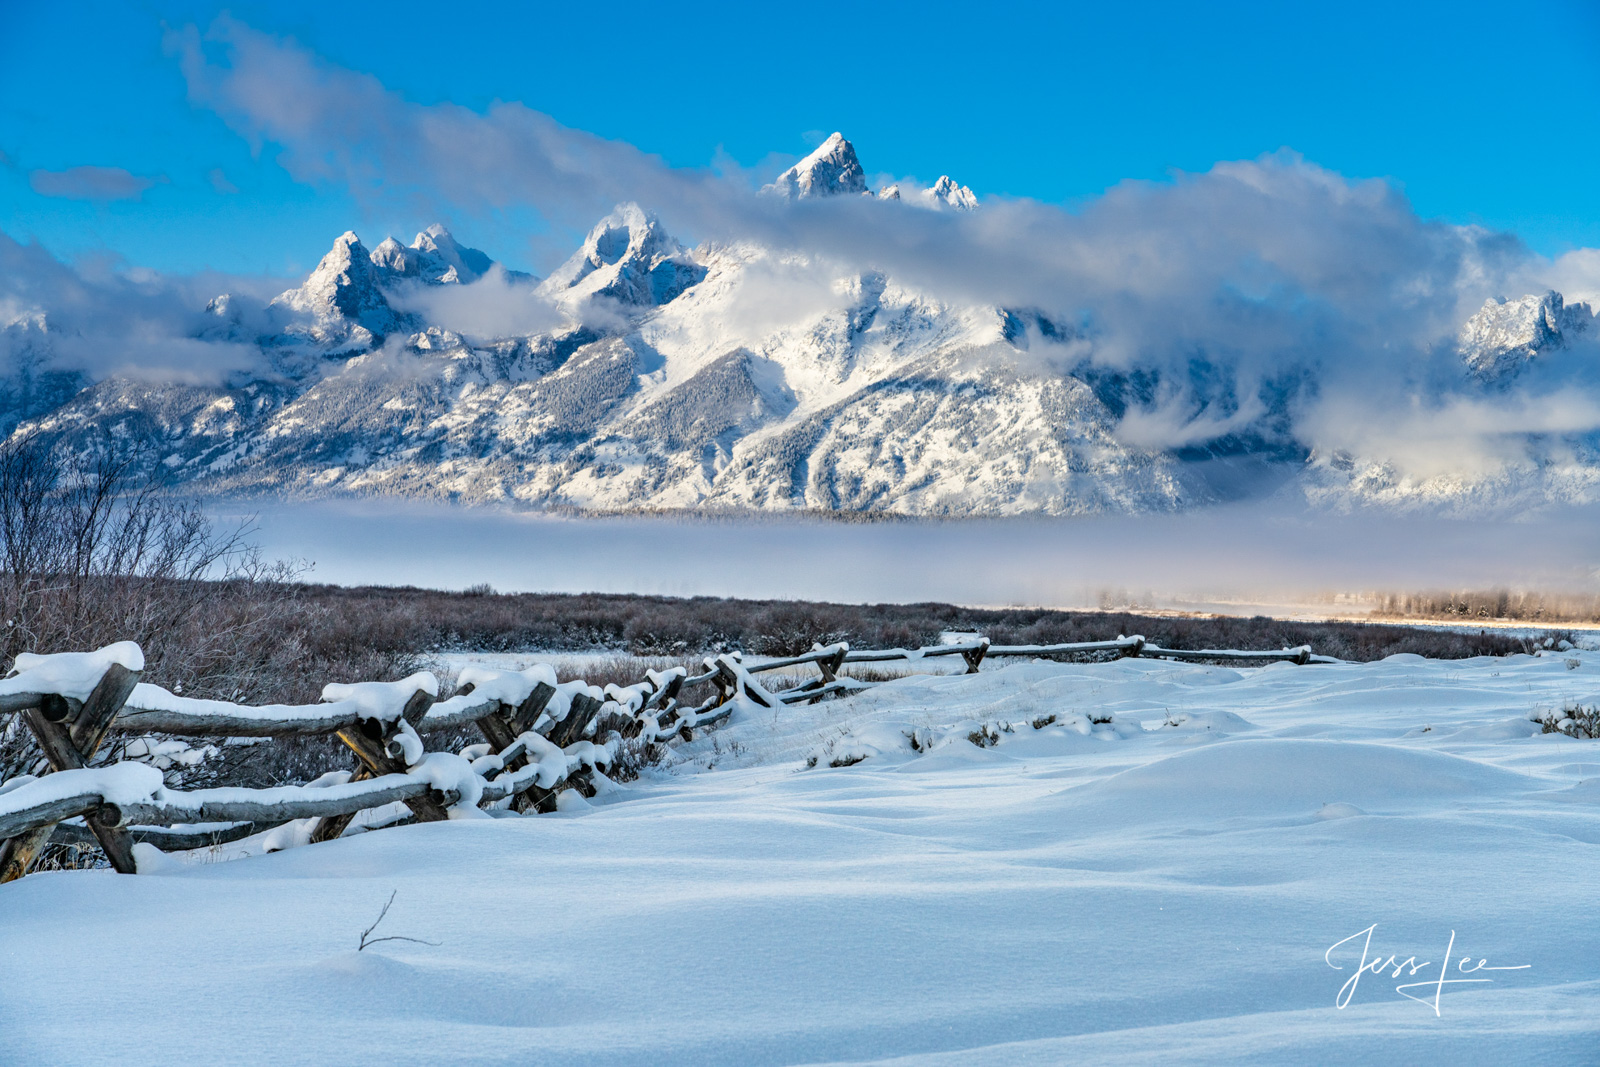 Limited Edition of 200 Grand Teton Fine Art Prints Teton Mountain Range in Winter. To see more Grand Teton Landscape Photography...